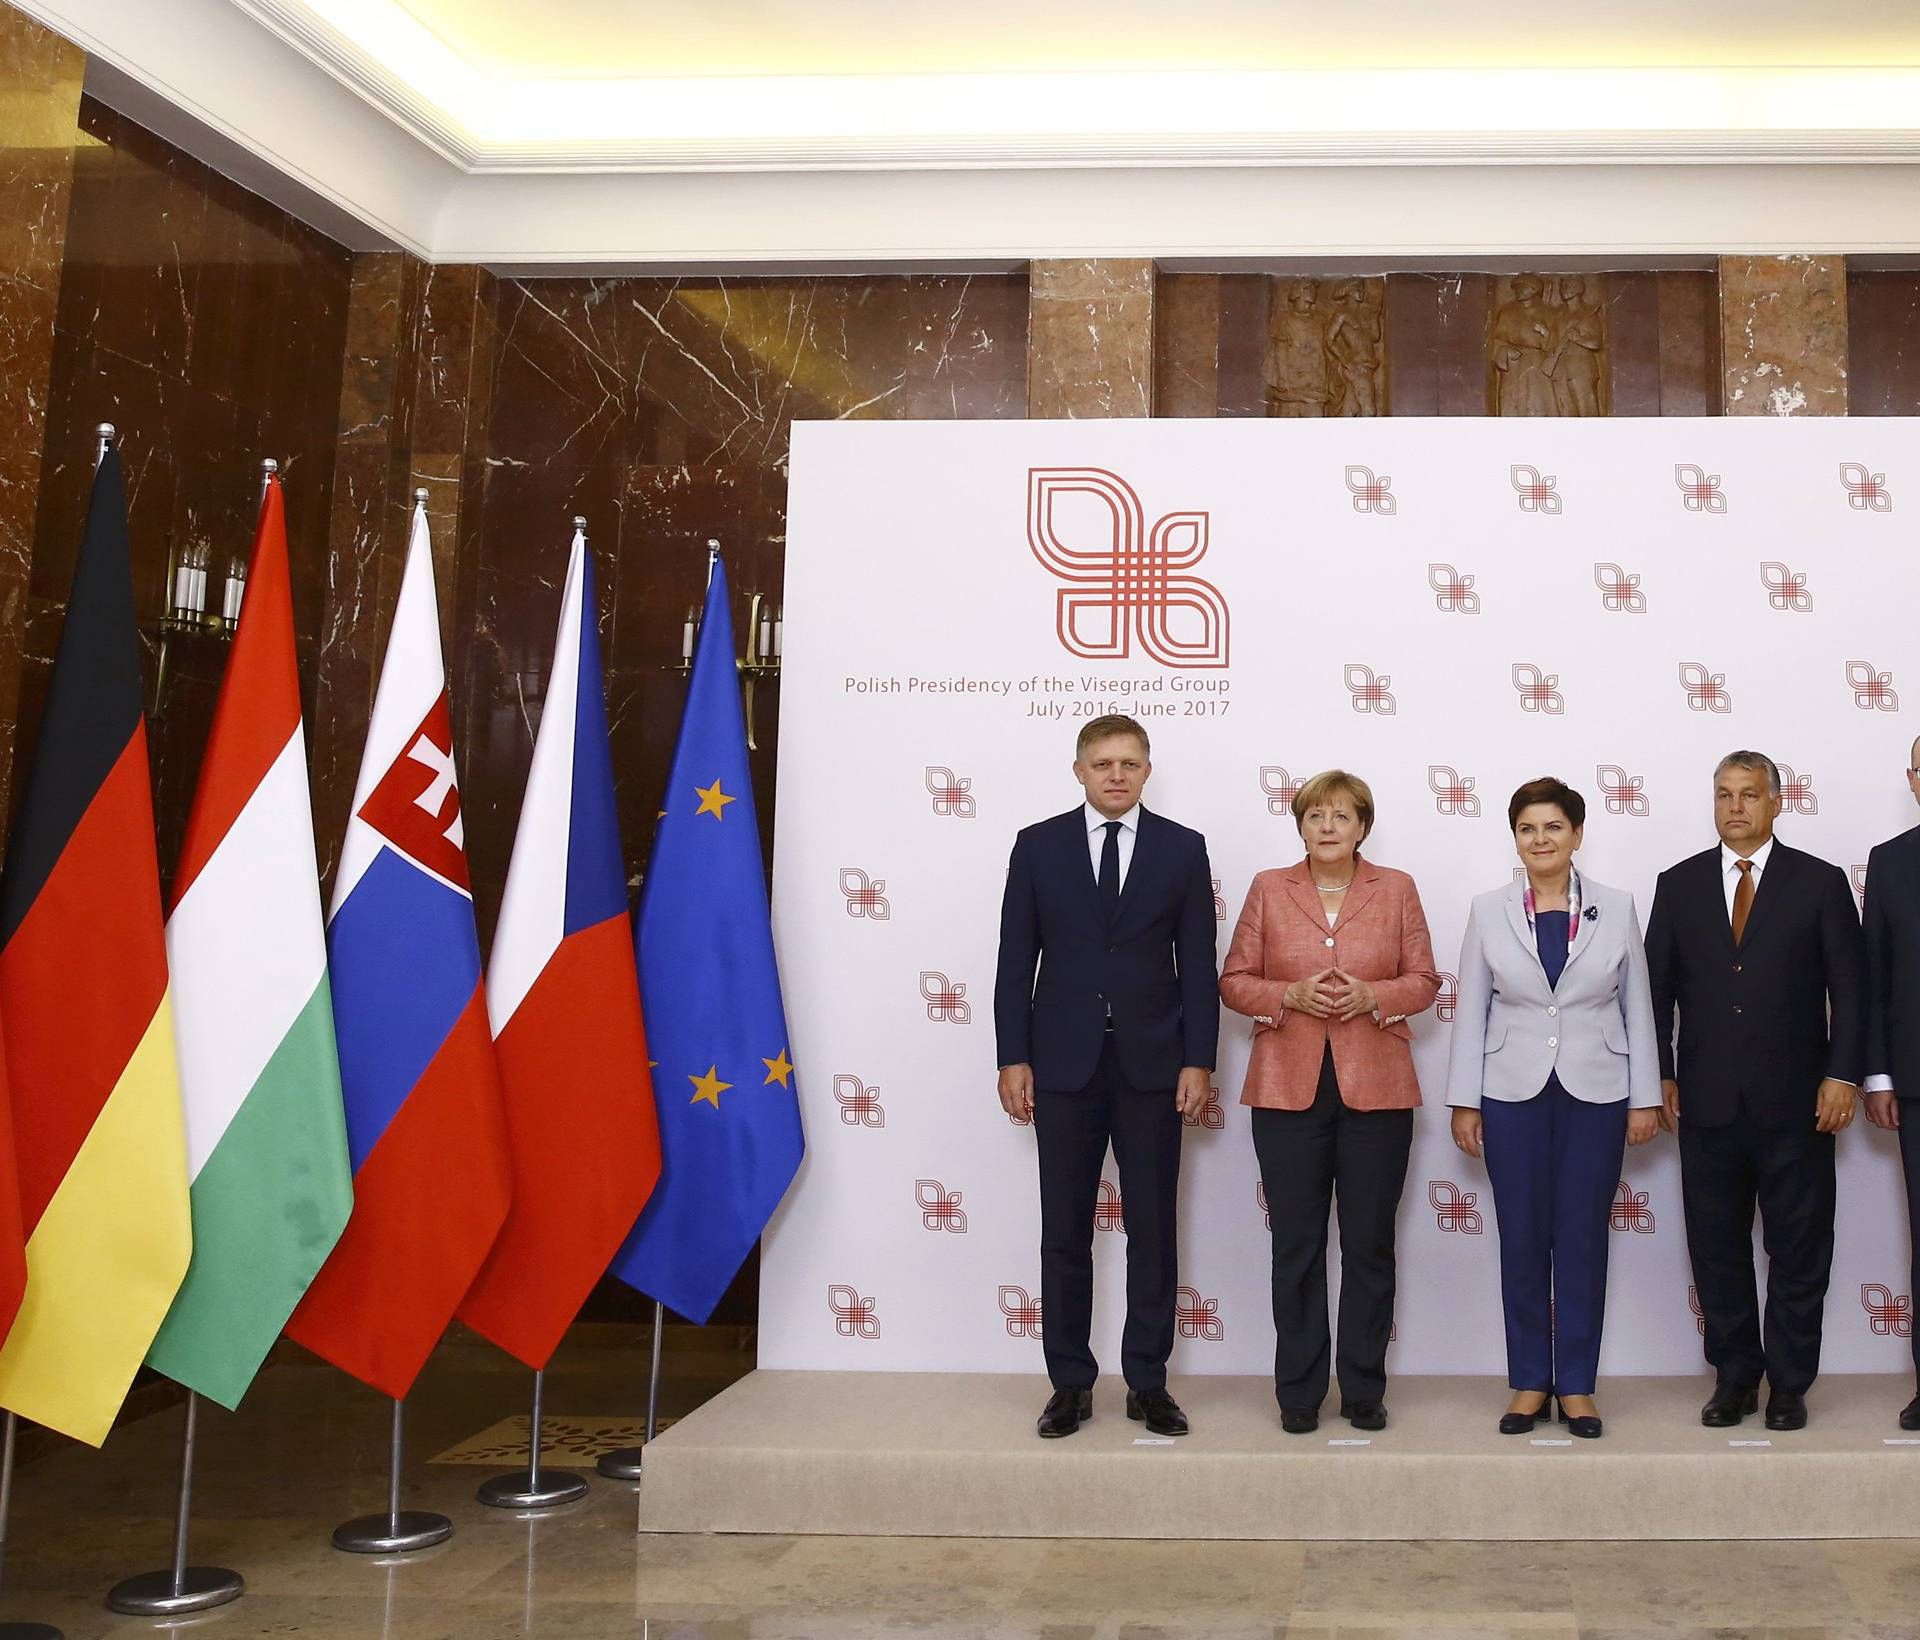 Slovakia's PM Fico, German Chancellor Merkel, Poland's PM Szydlo, Hungary's PM Orban and Czech Republic's PM Sobotka pose for media in Warsaw